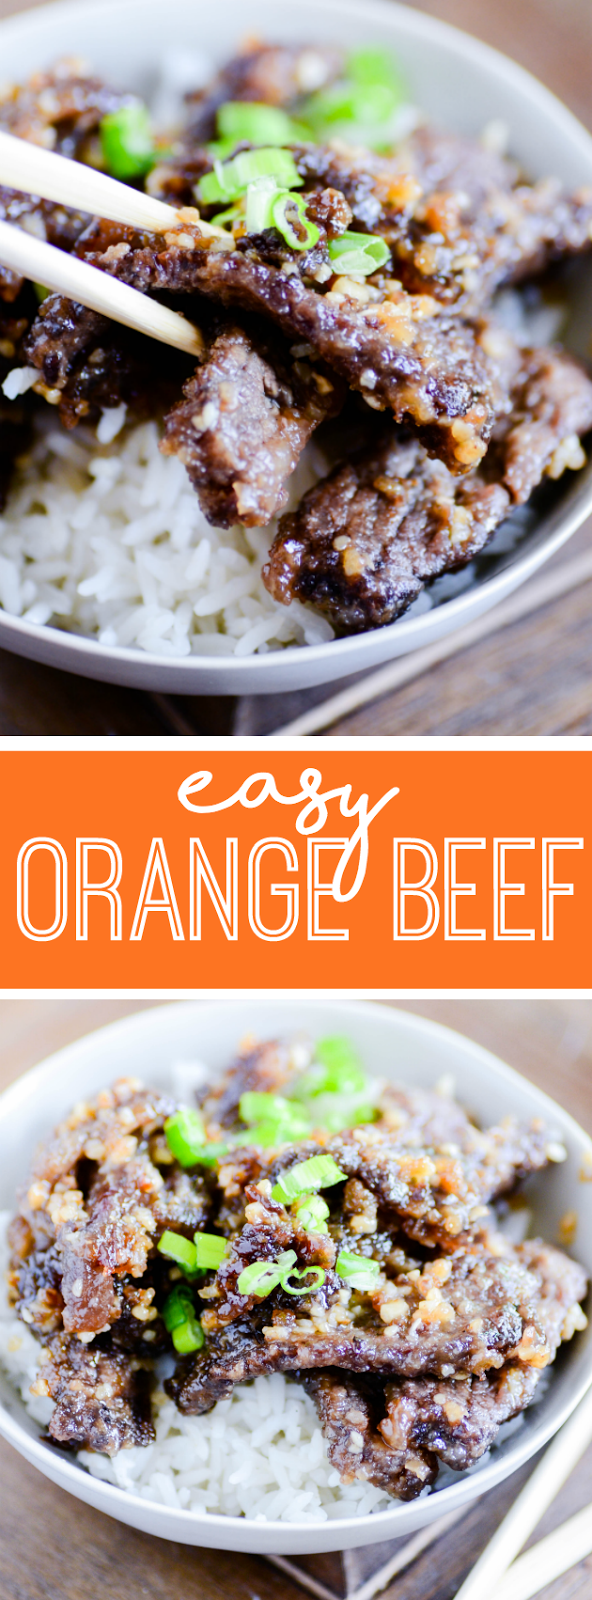 Homemade Orange Beef is so easy to make in only 30 minutes!